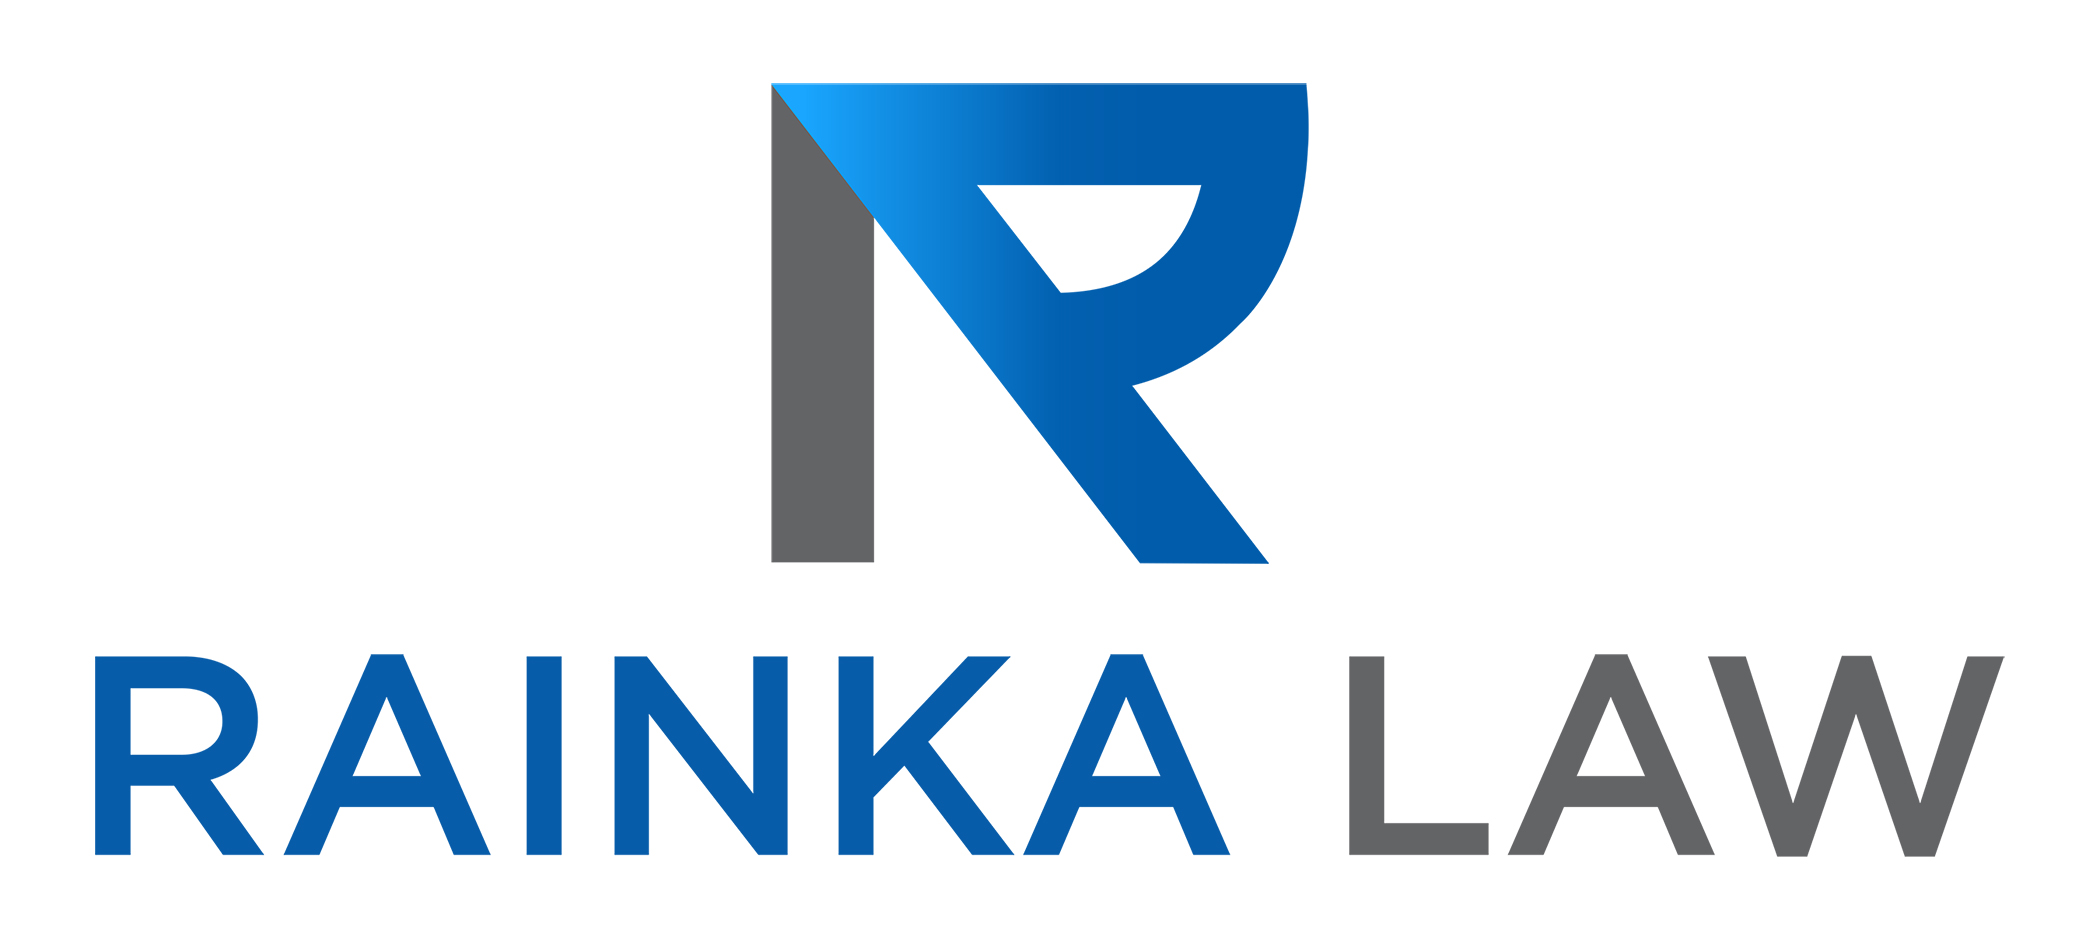 Rainka Law, LLC Profile Picture